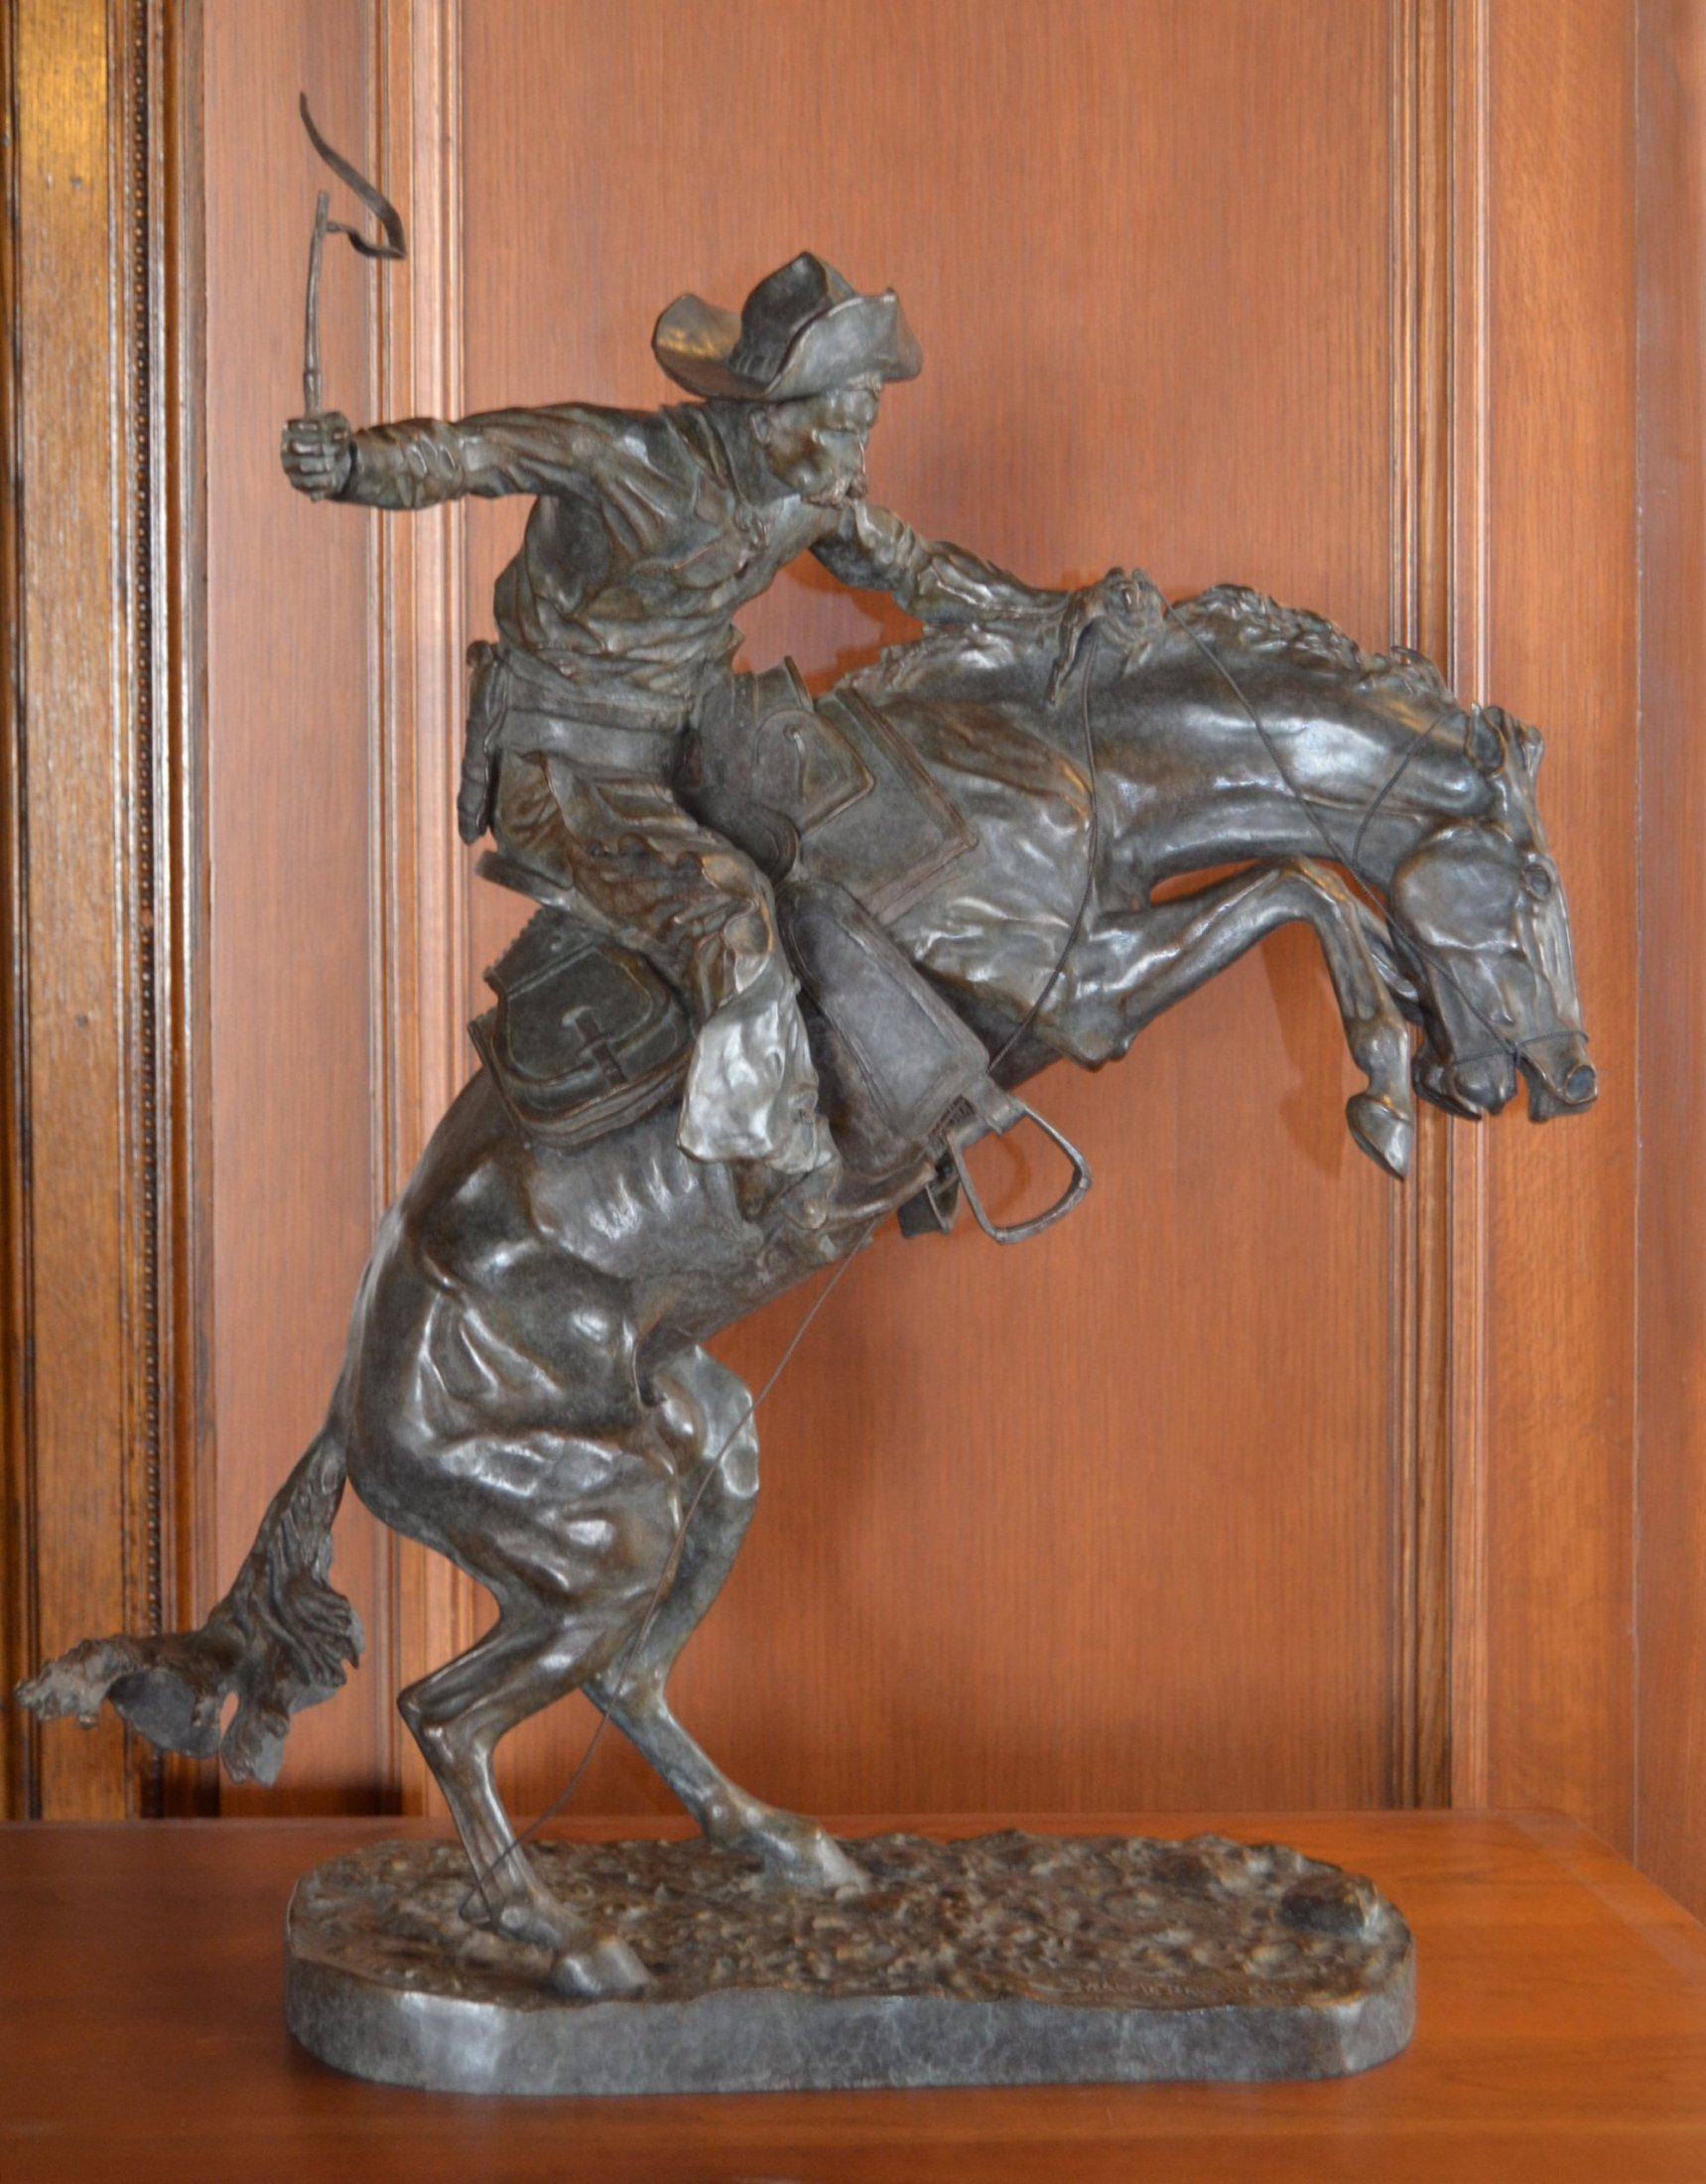 The Broncho Buster Digital Bronze